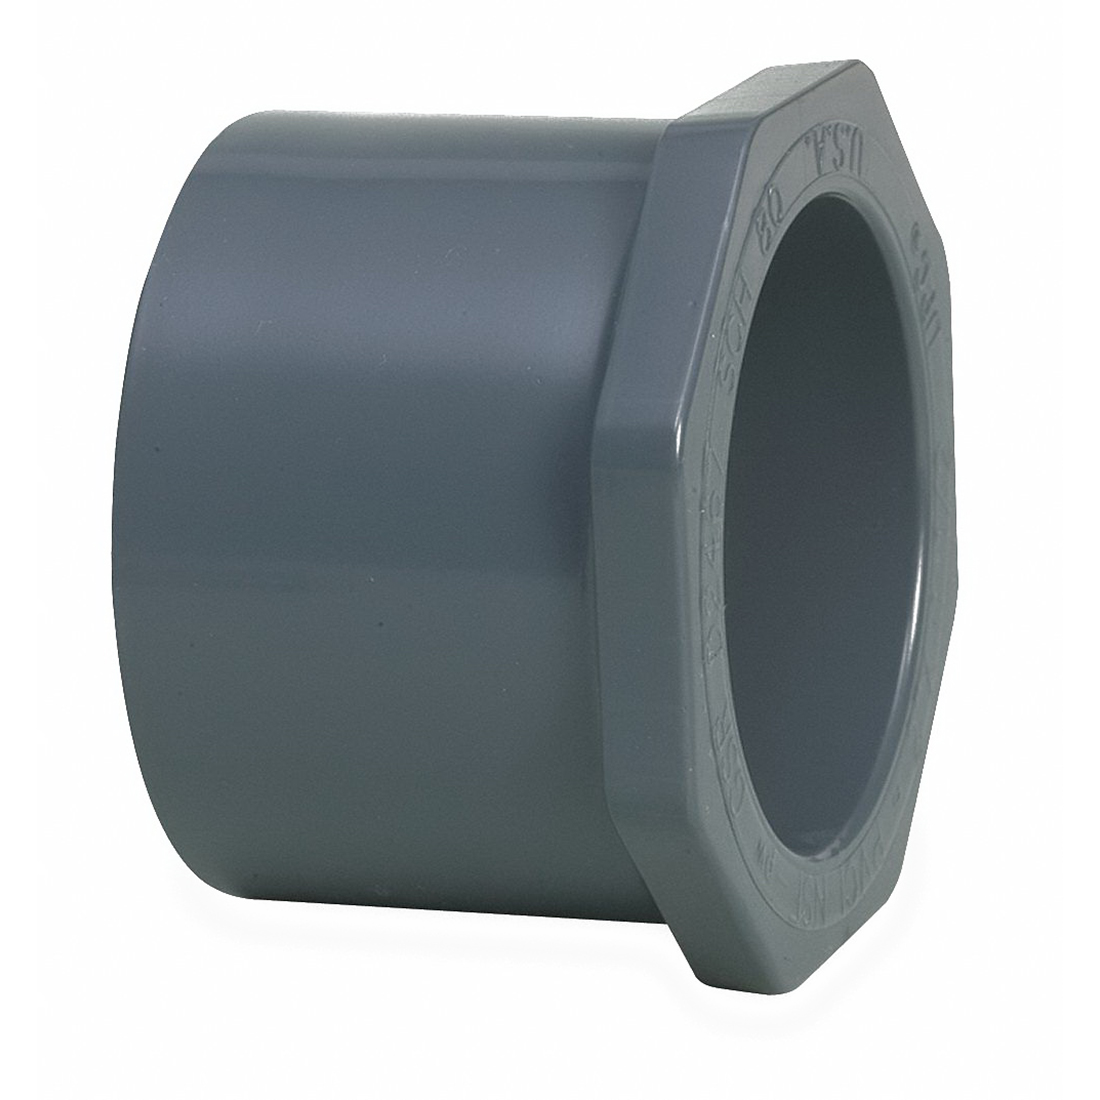 Gray CPVC SCH 80 Flush Style Reducer Bushing, 3 in x 2 in, Spigot x Socket